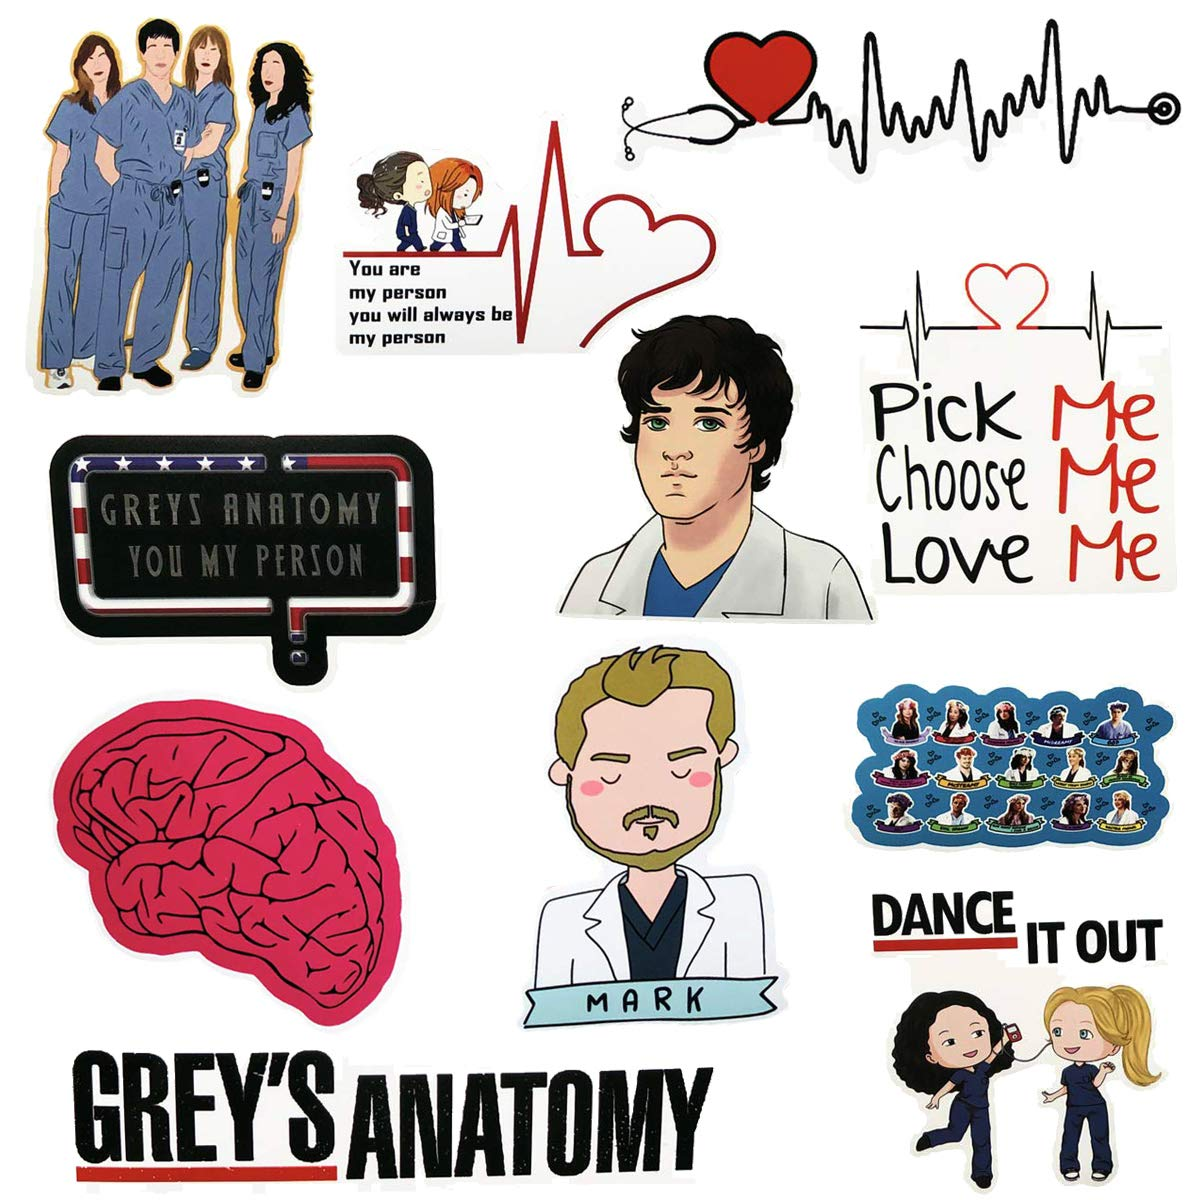 Grey\'s Anatomy Stickers, TV Show Greys Anatomy Funny Stickers Pack, Waterproof Vinyl Sticker for Laptop, Water Bottles, Hydroflasks, Phone, Computer (50 Pack)